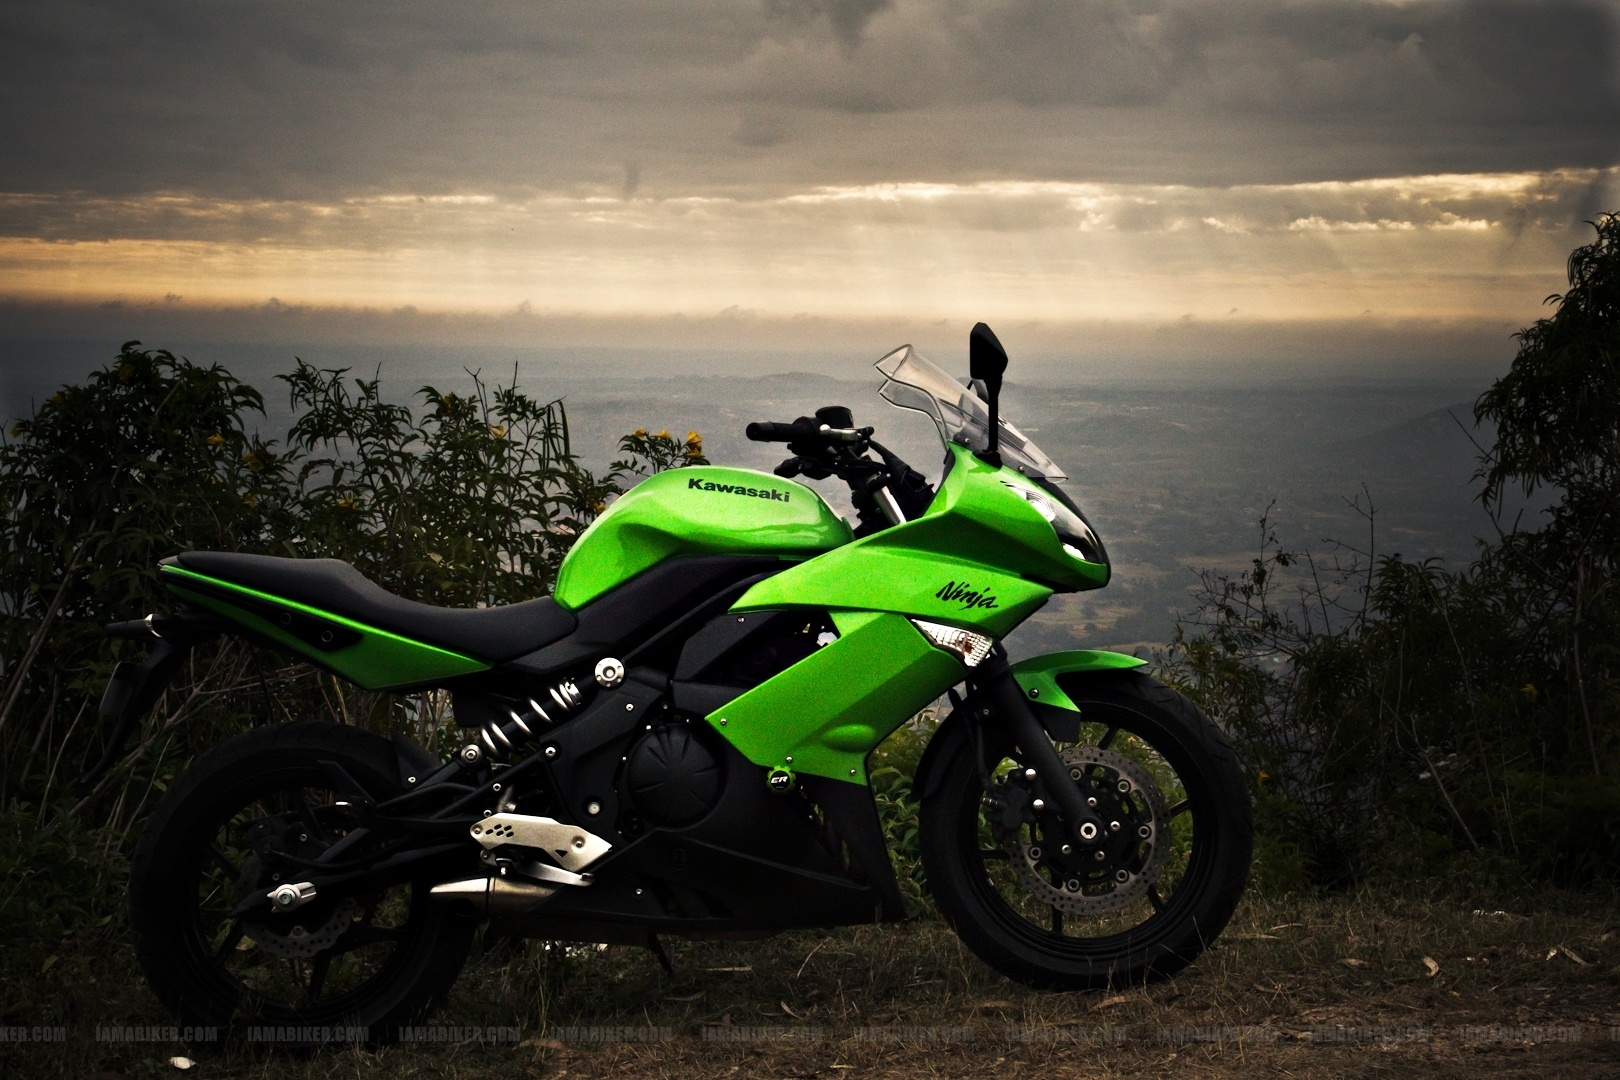 Kawasaki Ninja 650R wallpapers 01 IAMABIKER